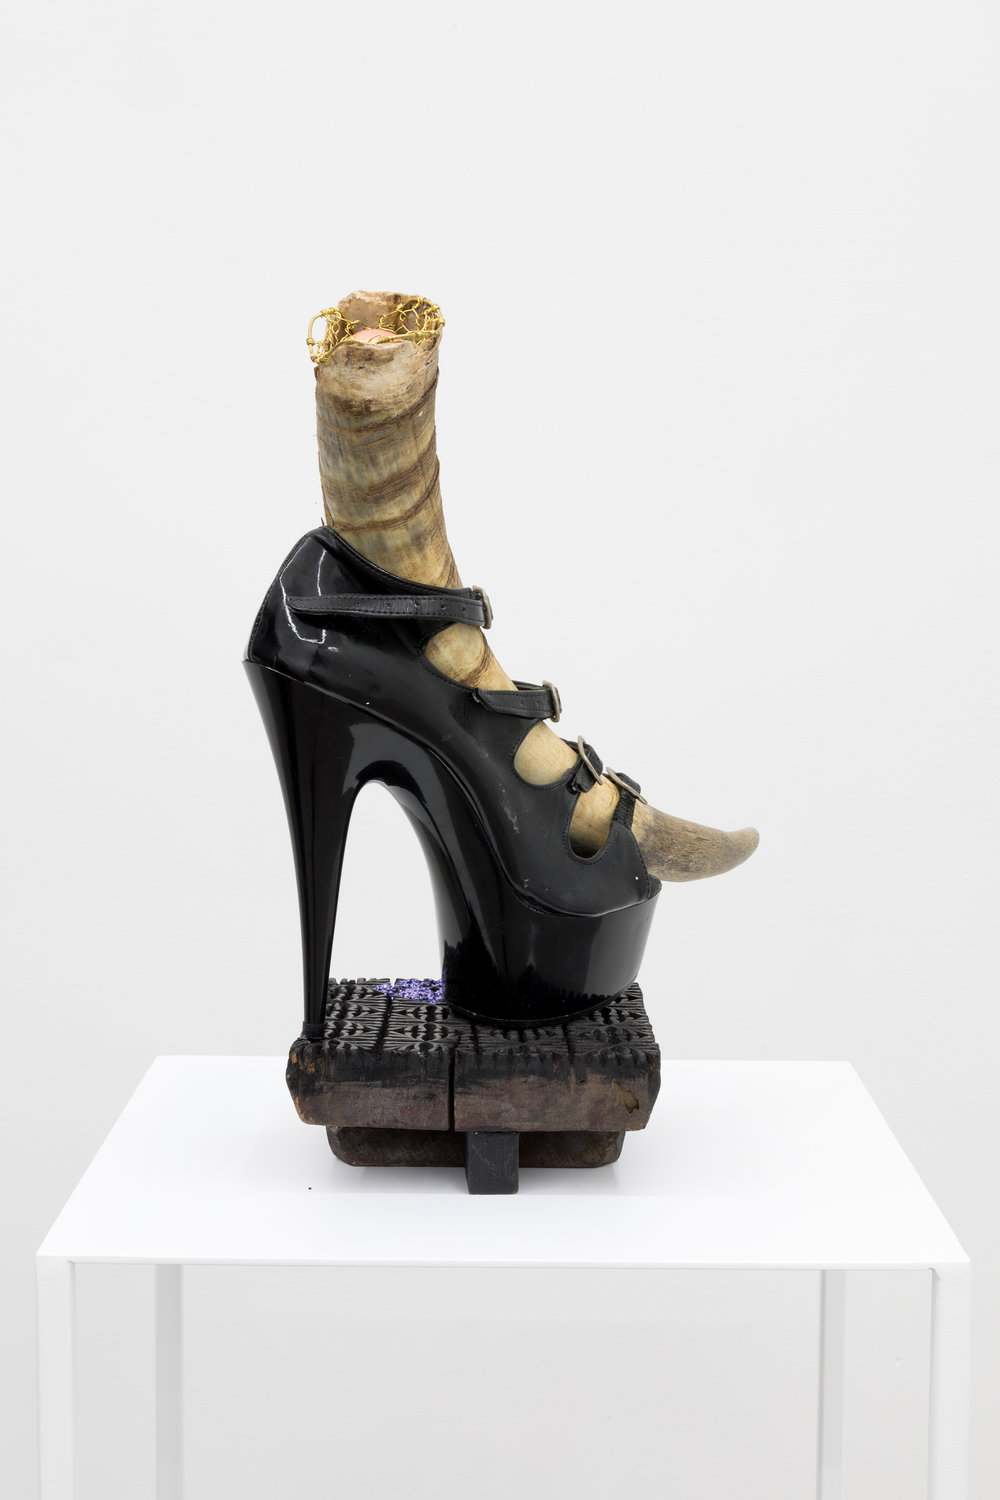 Genesis BREYER P-ORRIDGE,  Shoe Horn #4 , 2014, Ram Horn, shoe worn by Genesis as Lady Sarah, sting ray skin, ermine fur, bone, Nepalese fabric- printing square, brass netting, copper ball, 9 x 9 x 8 in